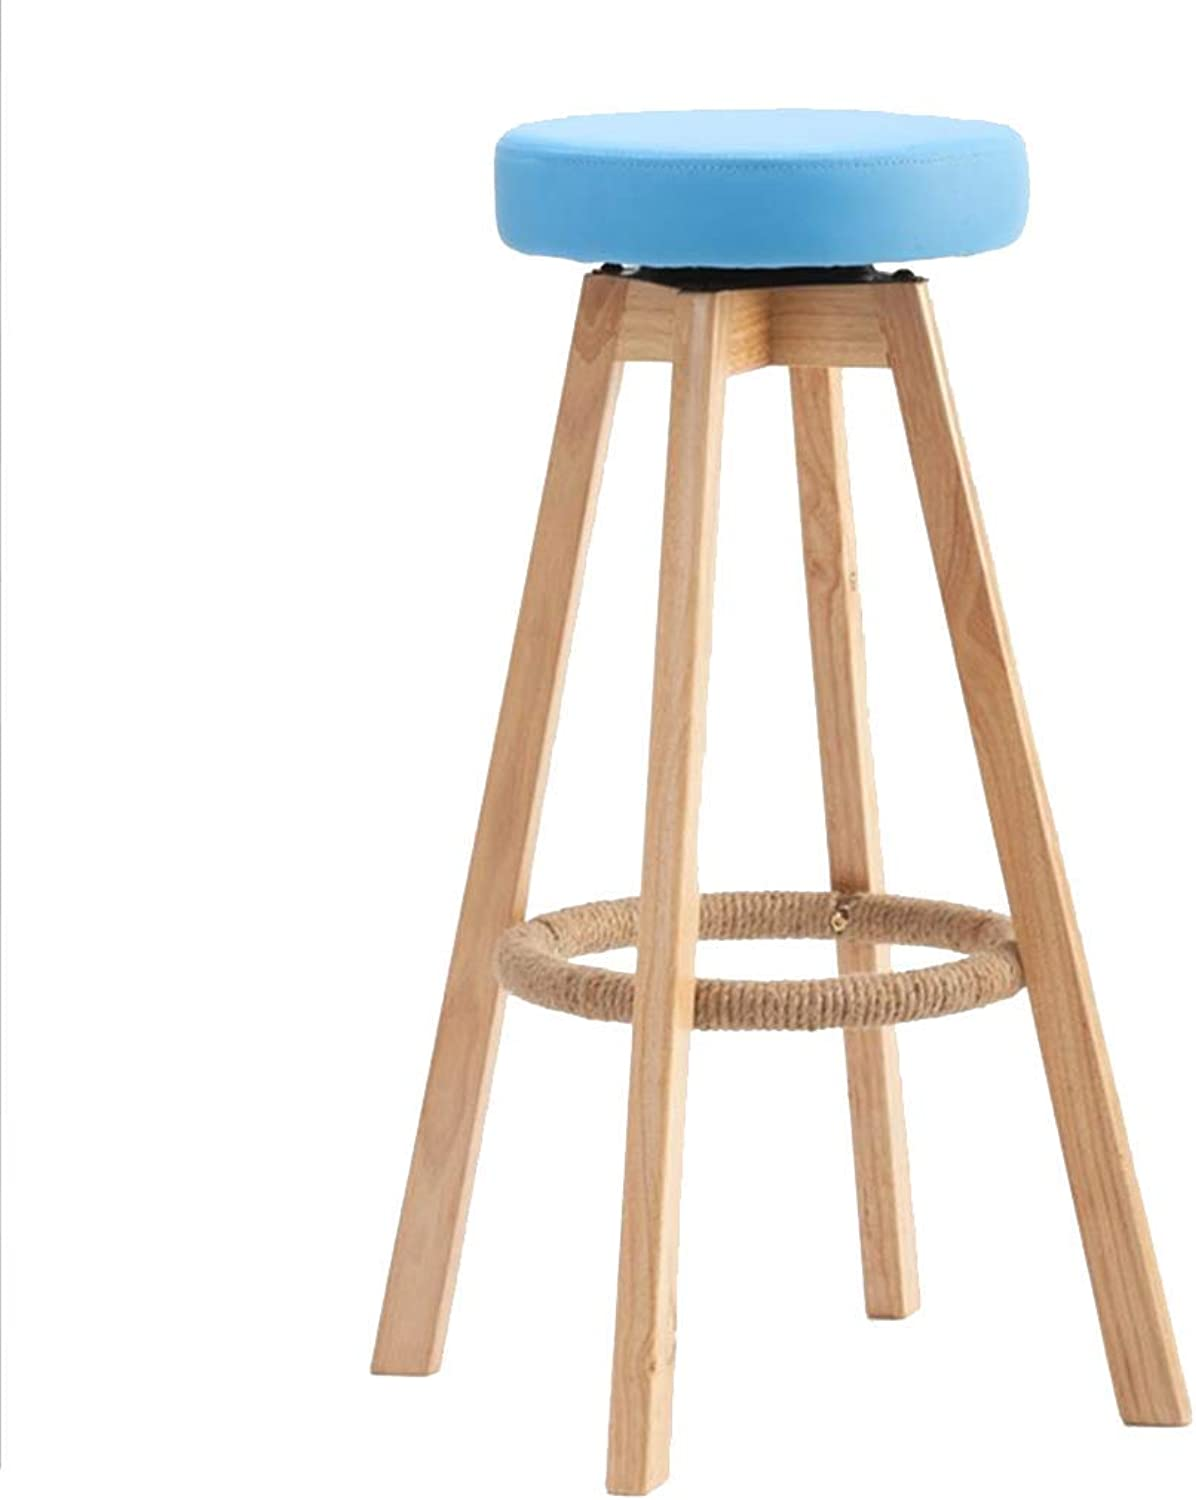 Bar stools, Continental bar Chair Solid Wood High Stool Vintage bar Chair Backrest Bar stools 360 Degree (color    2)